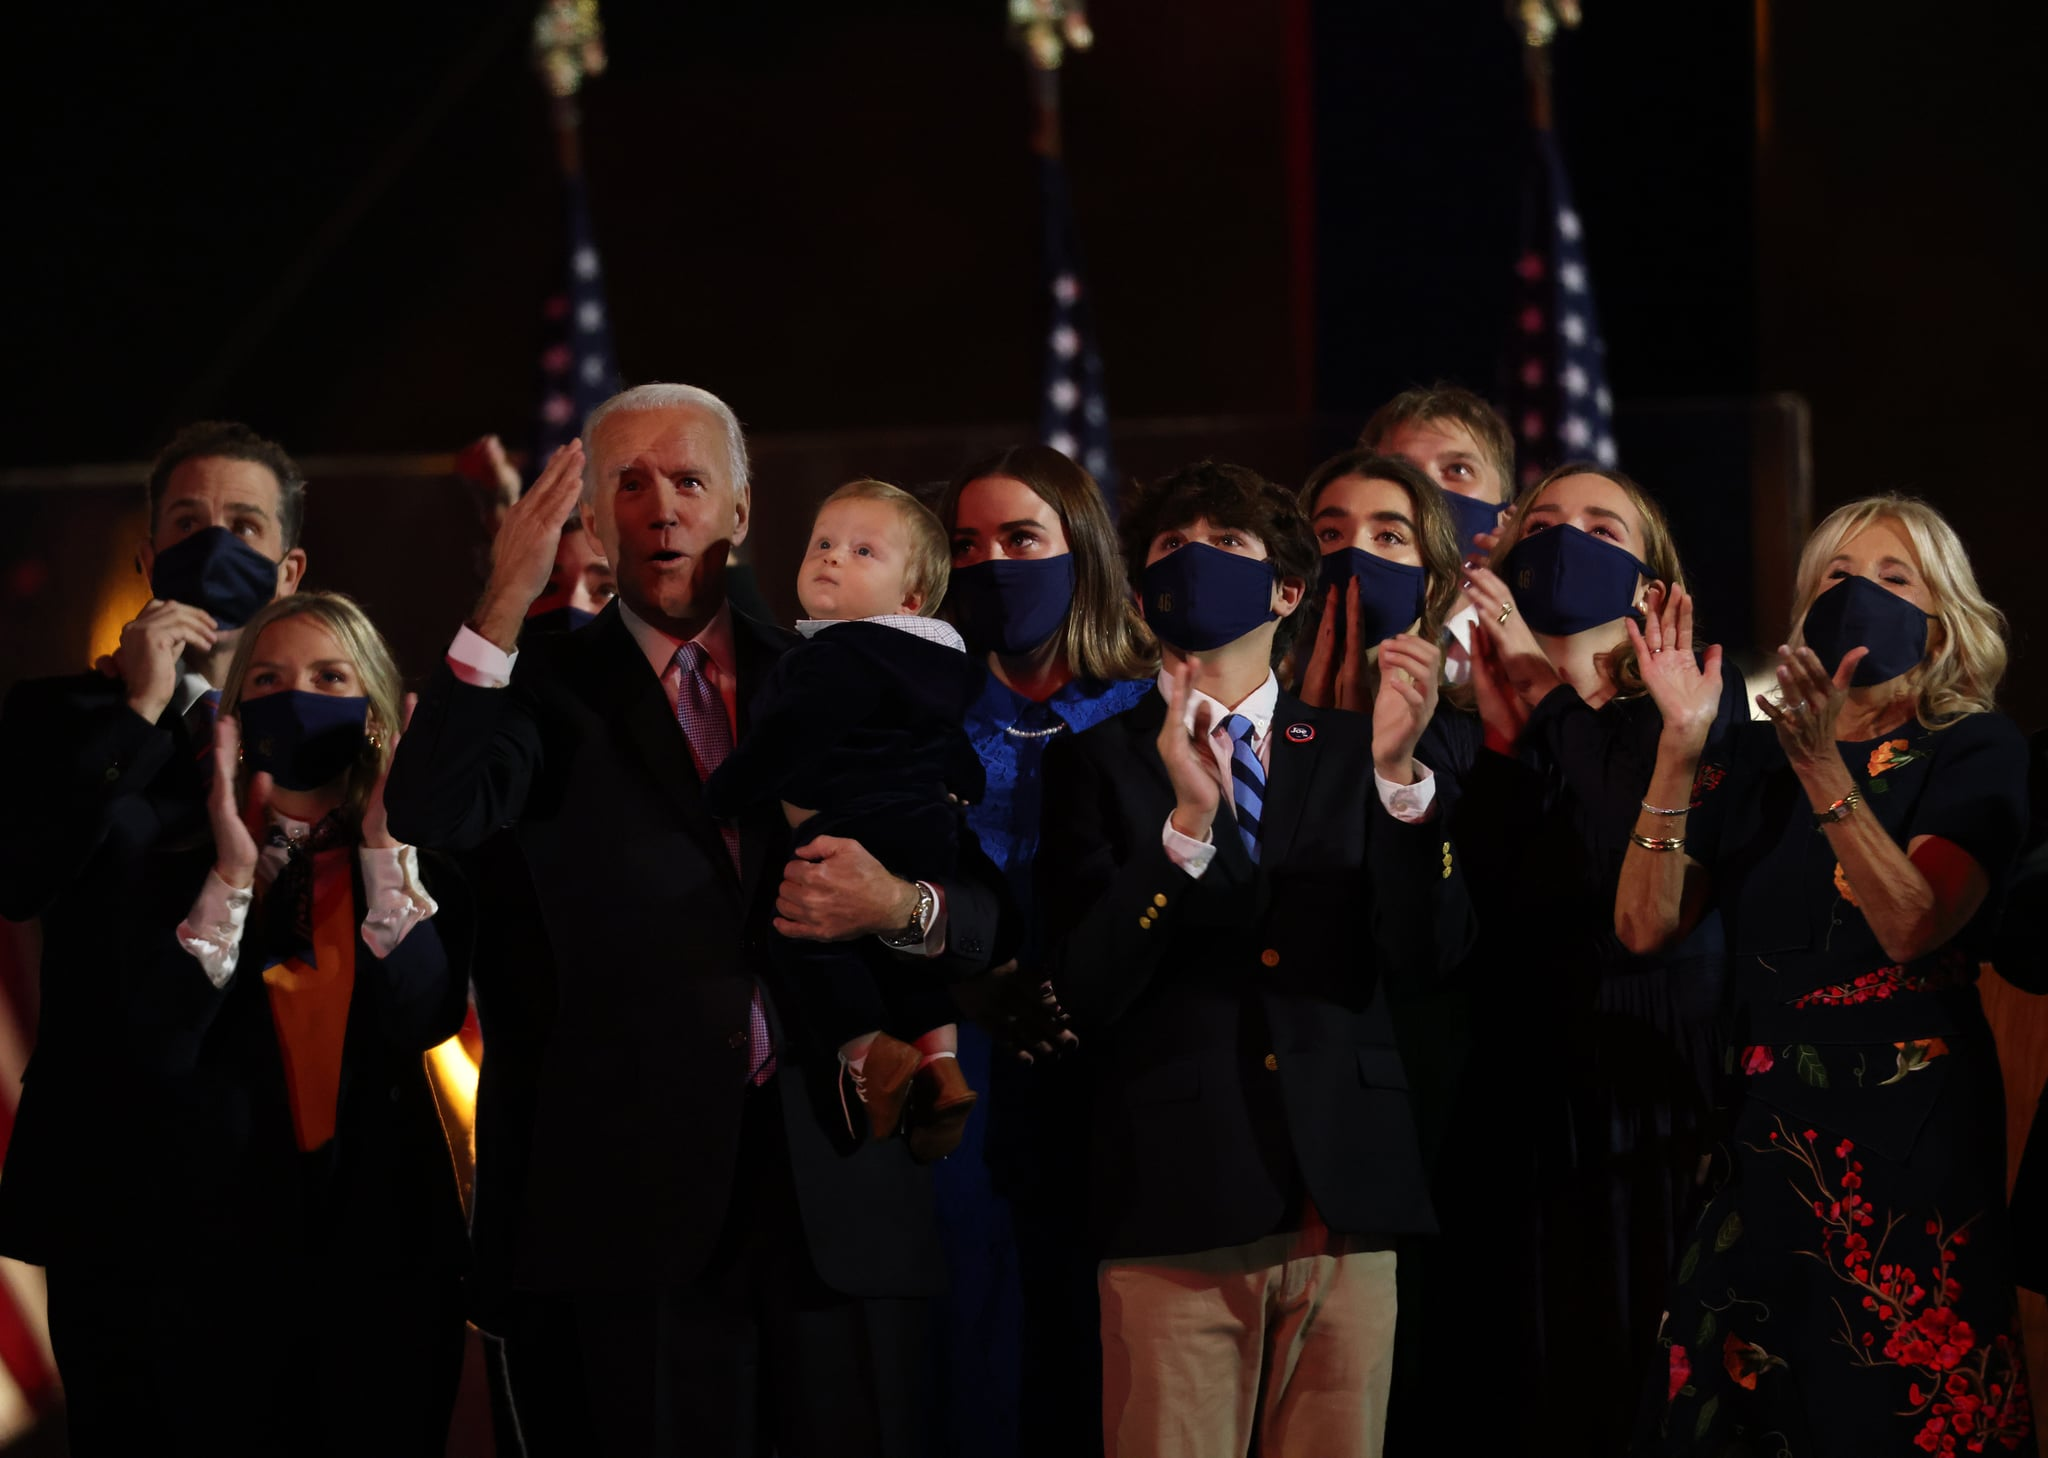 WILMINGTON, DELAWARE - NOVEMBER 07:  President-elect Joe Biden and family watch fireworks from stage after Biden's address to the nation from the Chase Center November 07, 2020 in Wilmington, Delaware. After four days of counting the high volume of mail-in ballots in key battleground states due to the coronavirus pandemic, the race was called for Biden after a contentious election battle against incumbent Republican President Donald Trump. (Photo by Win McNamee/Getty Images)